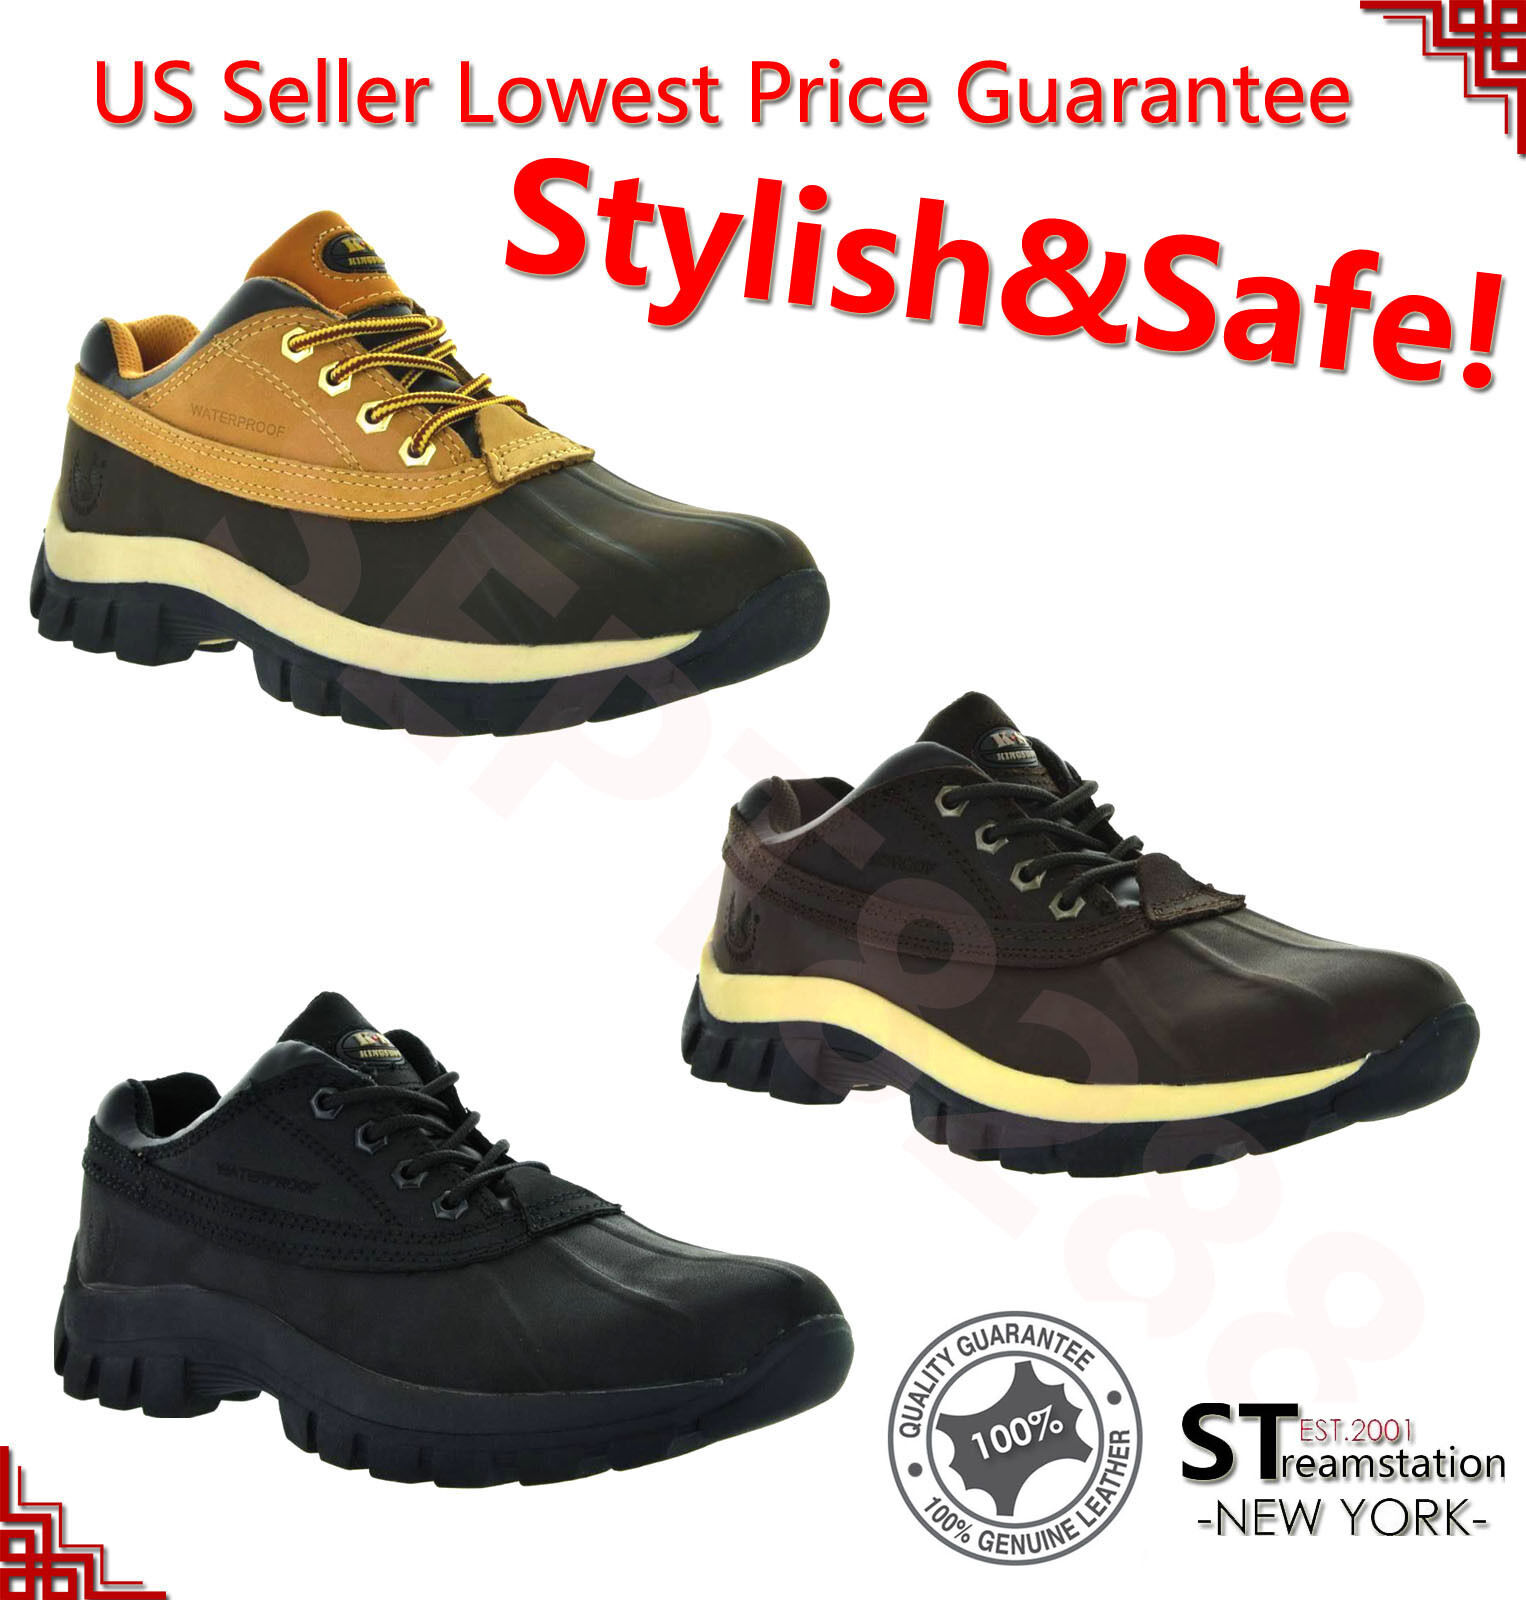 4'' Winter Snow Boots Mens Waterproof Work Boots Mens Short Waterproof Mens Leather Shoes 3017 9961d1